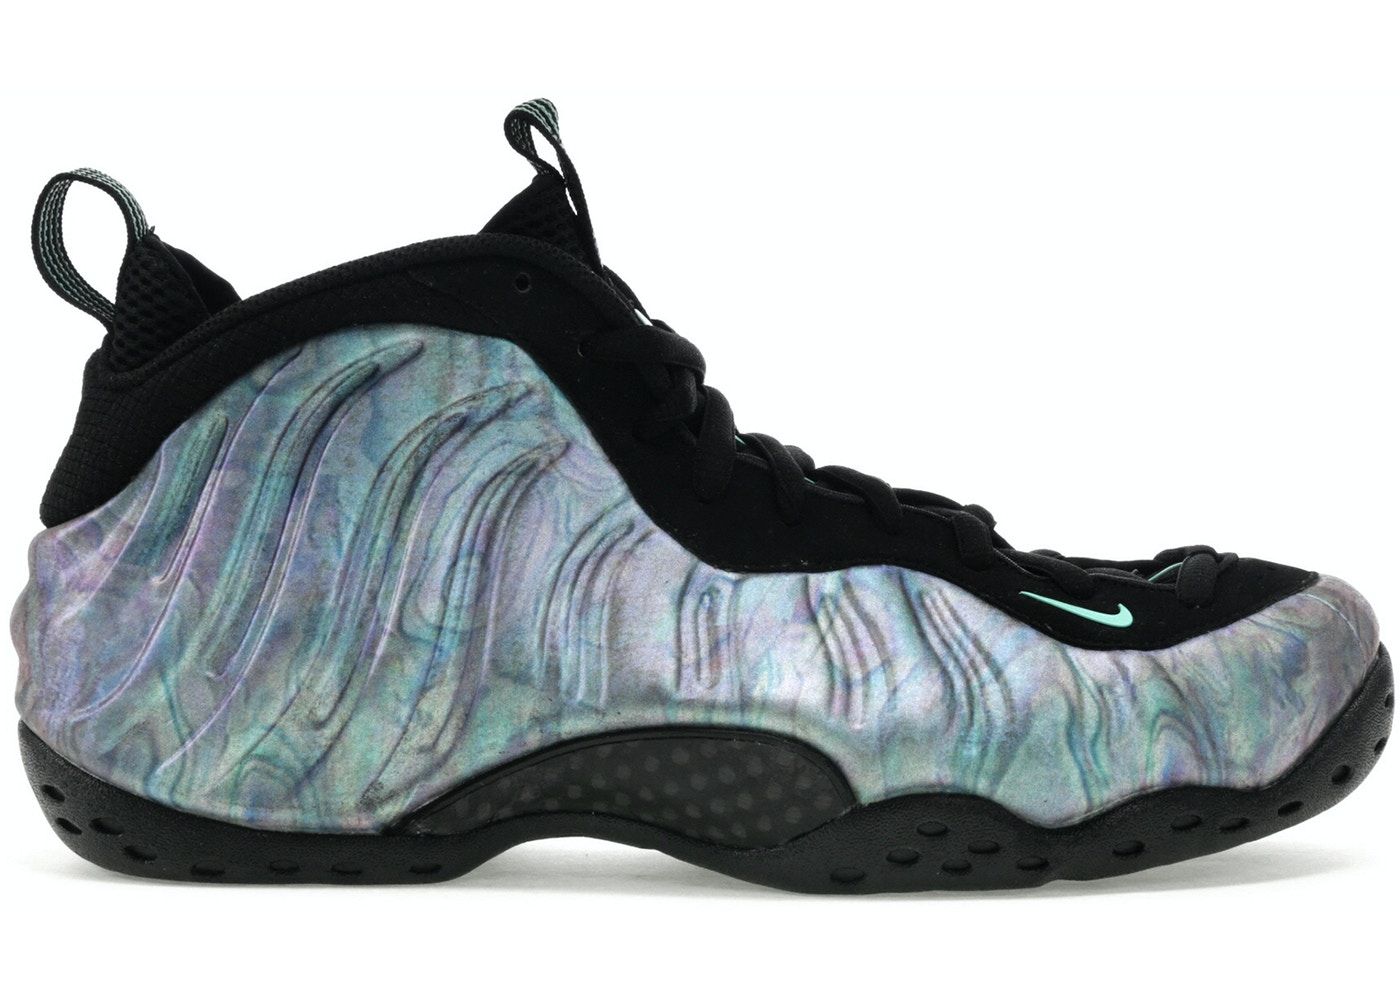 436b24c23ed Air Foamposite One Abalone - 575420-009